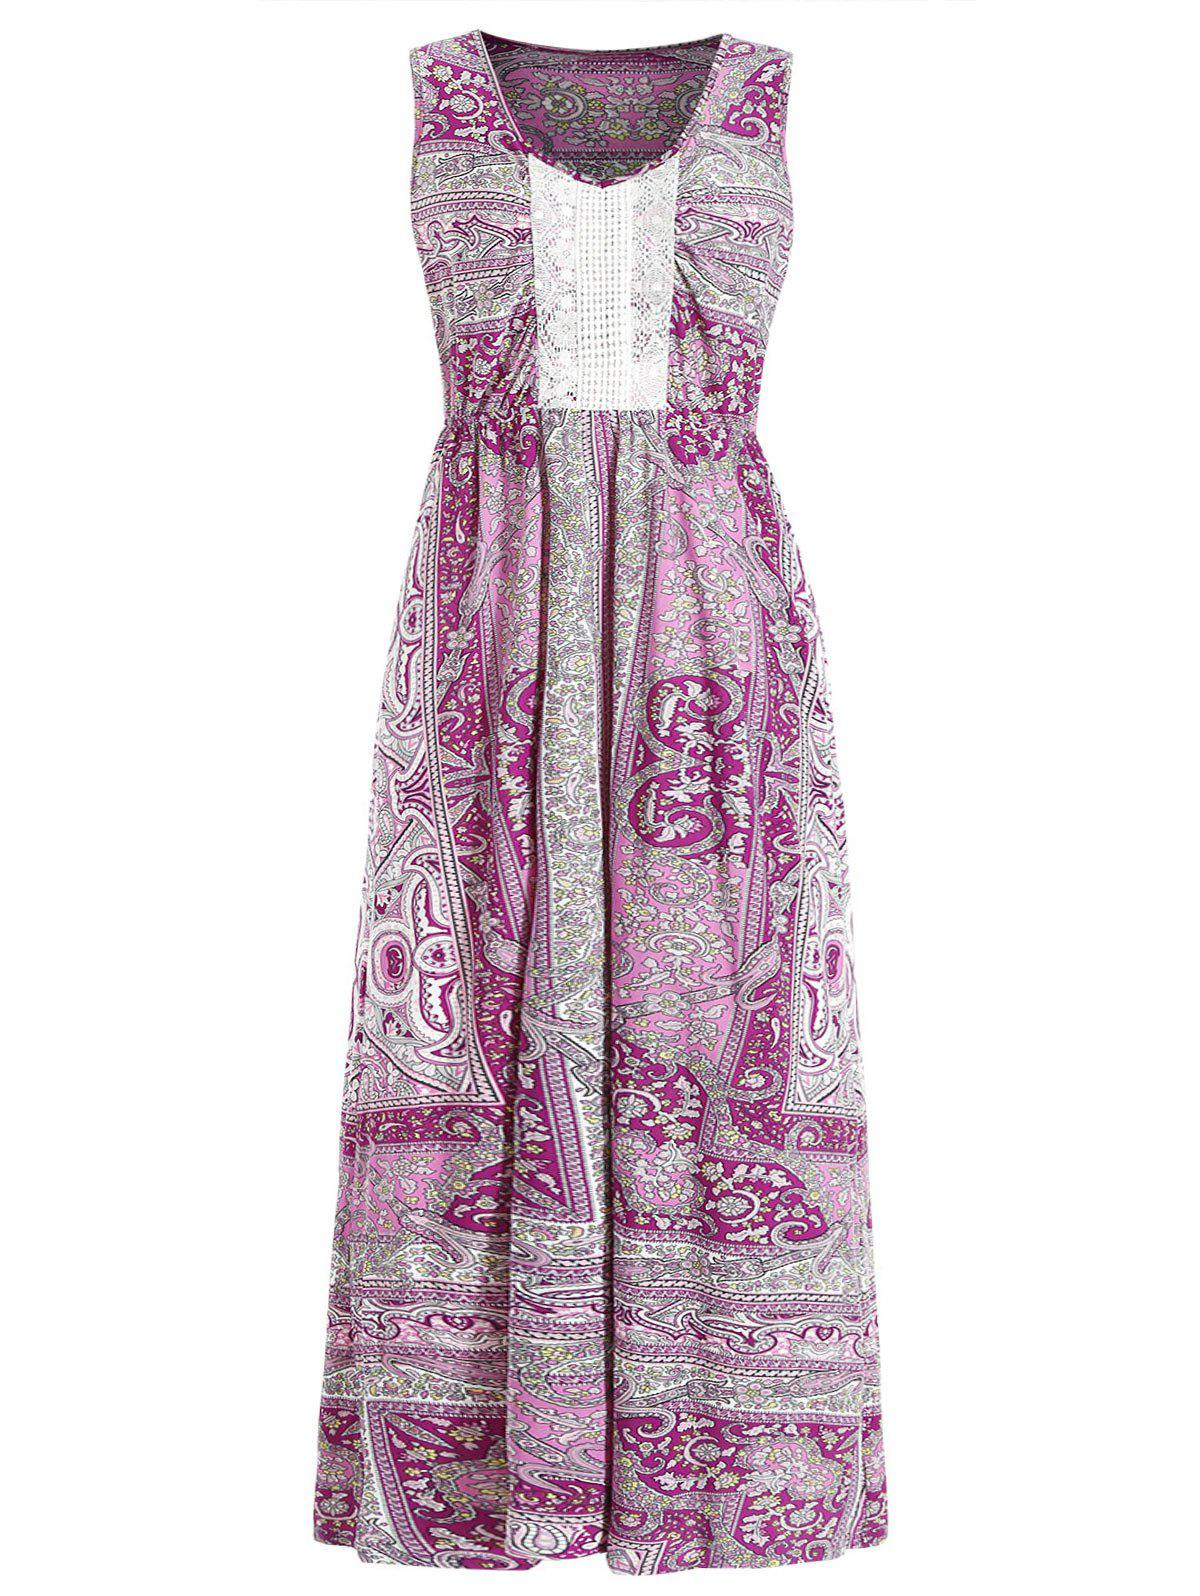 Bohemian Print Maxi Dress - multicolor M